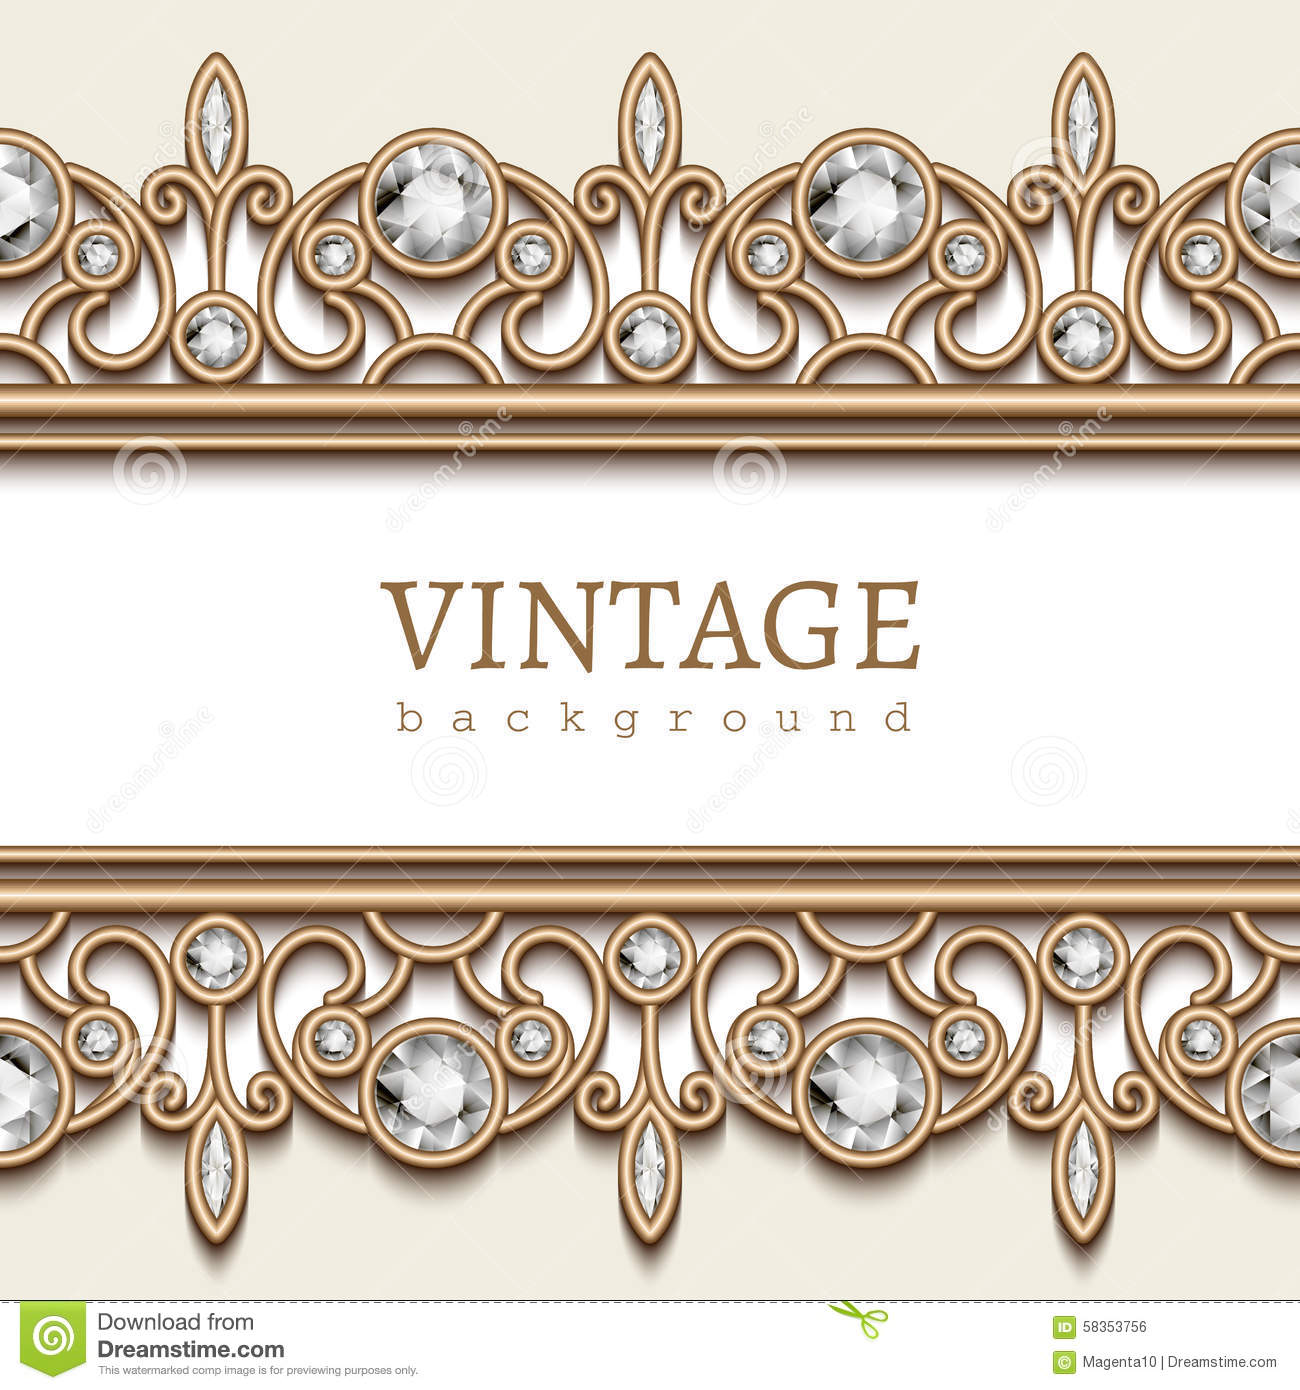 Vintage gold frame with jewelry borders on white background.